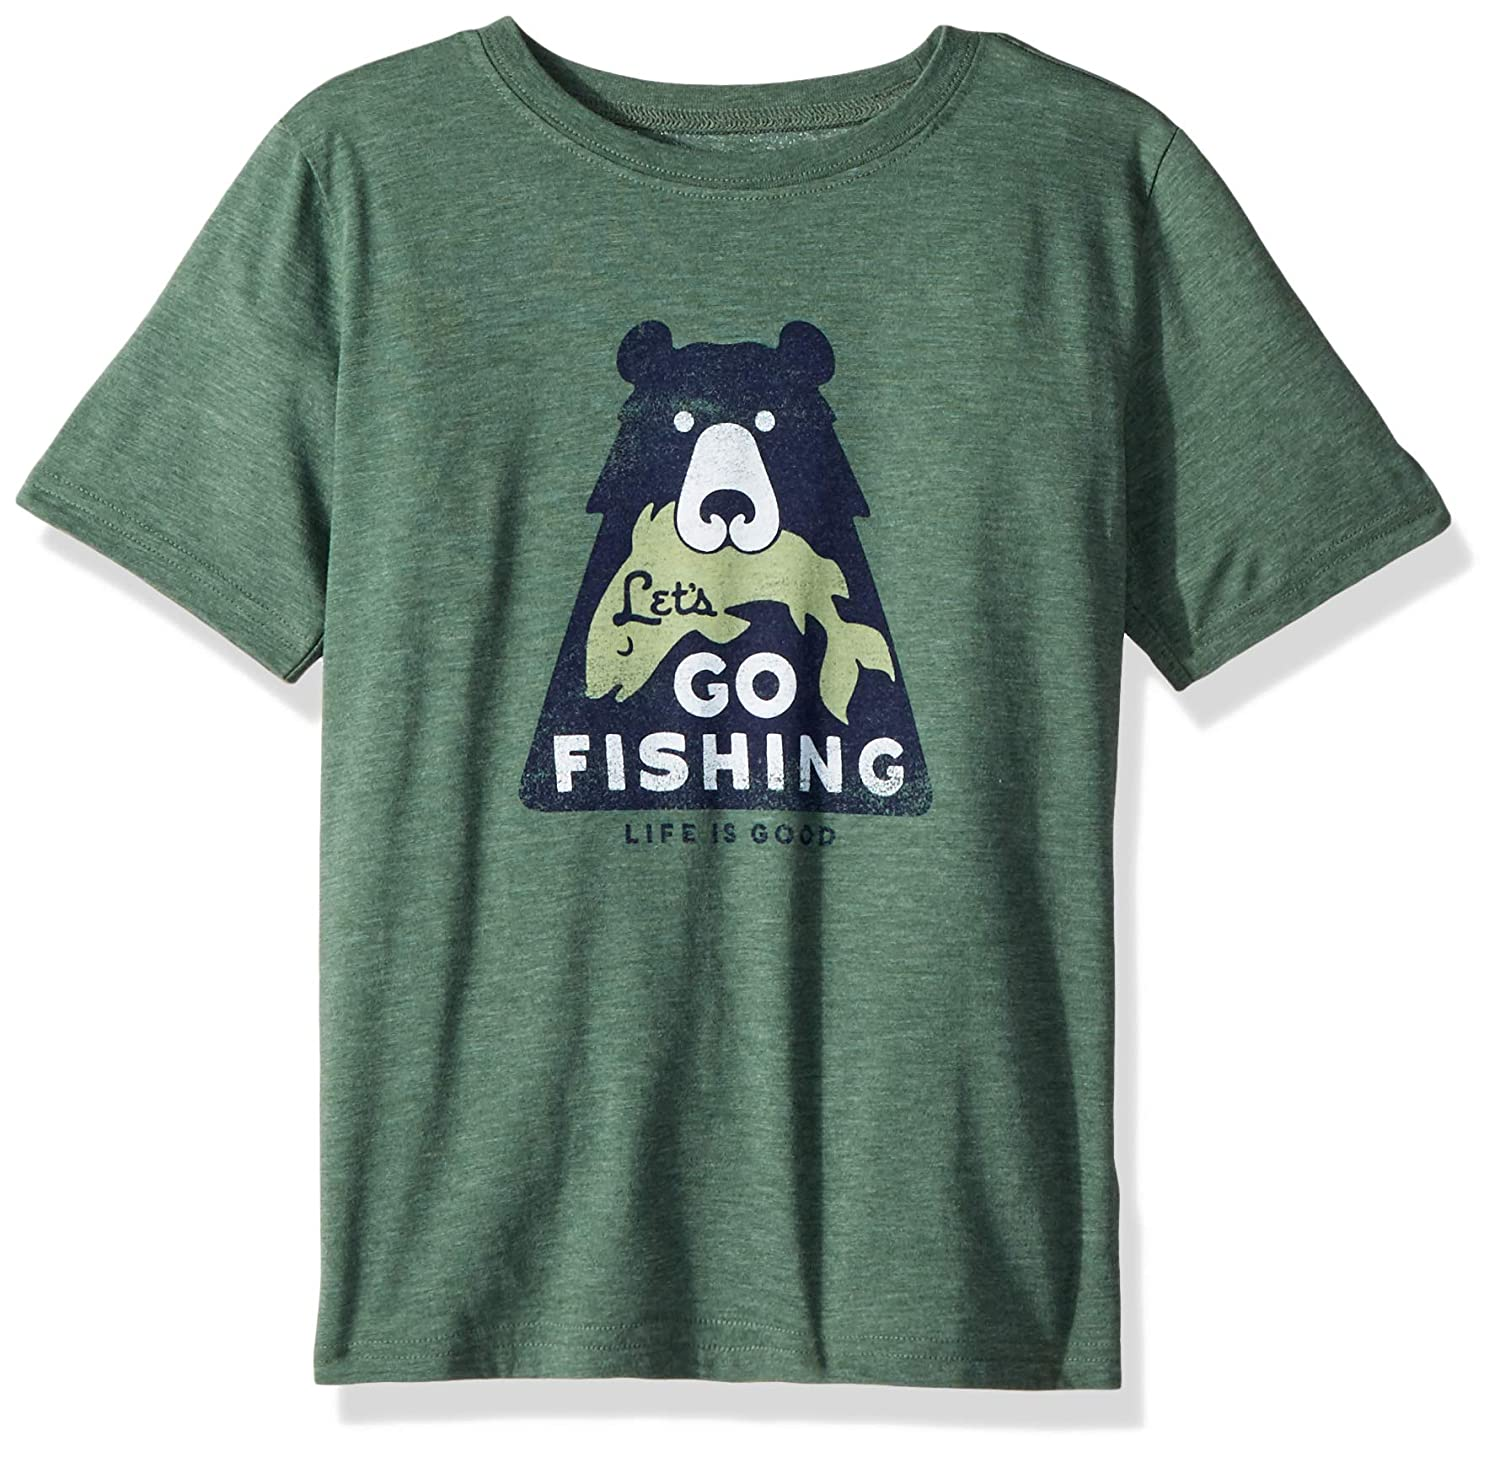 Lets Go Fishing Boys Cool Tee Life is Good Forest Green